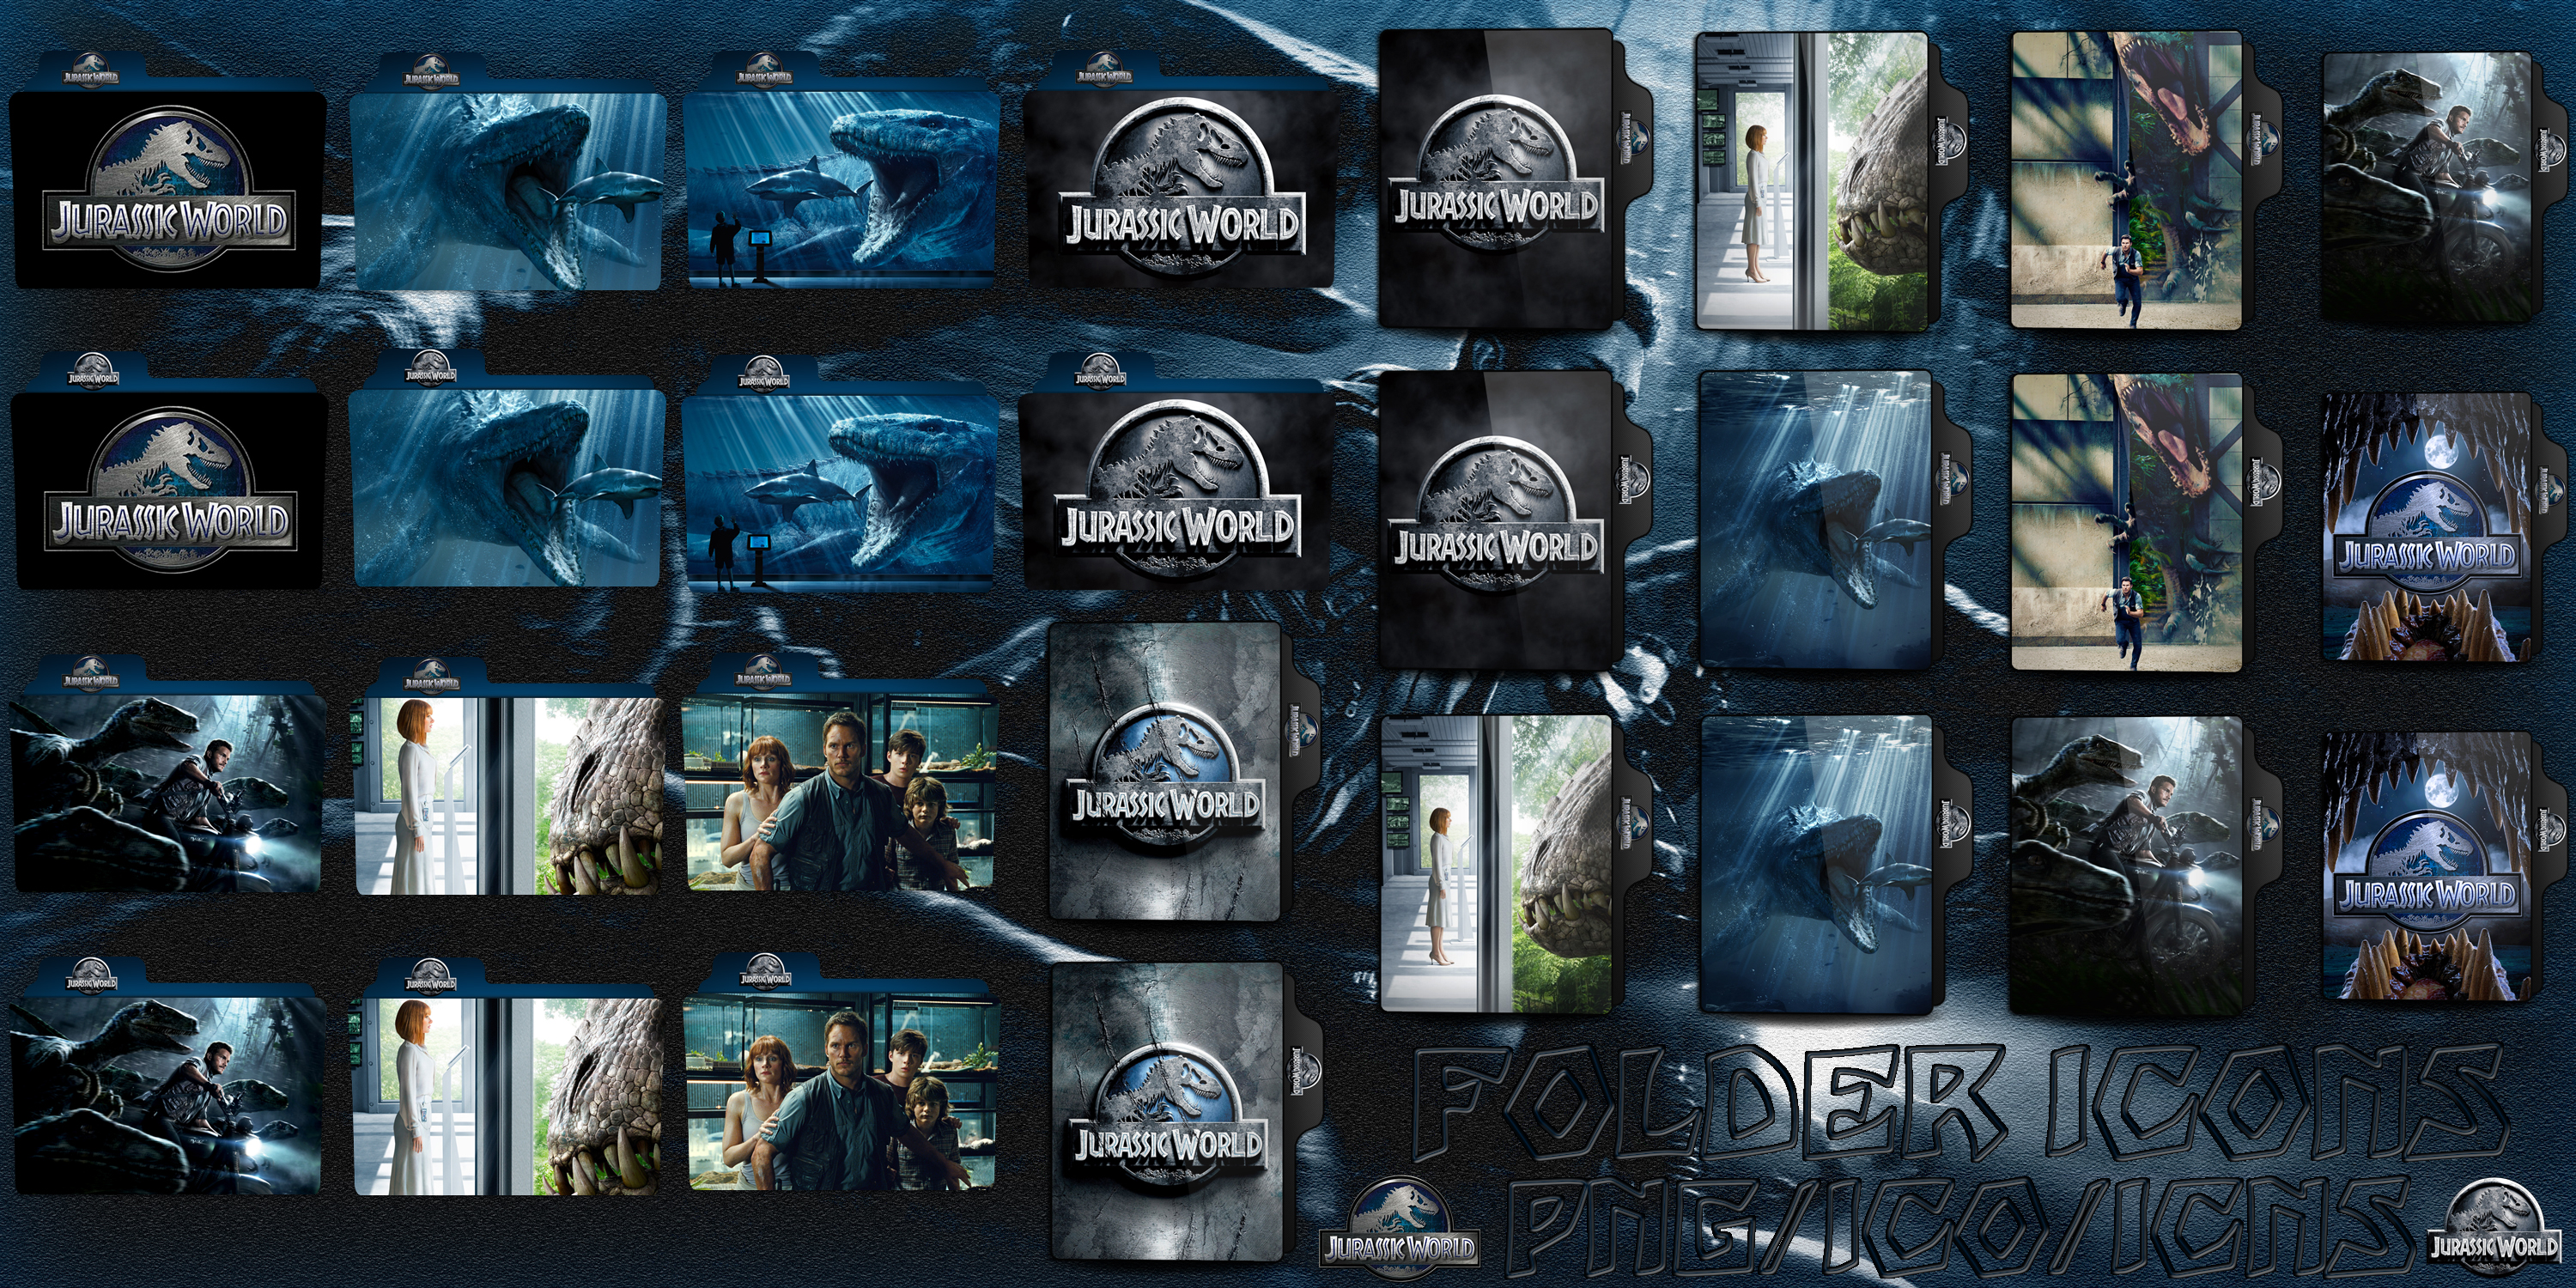 Jurassic World 2015 Folder Icons Pack By Chrisneville32 On Deviantart